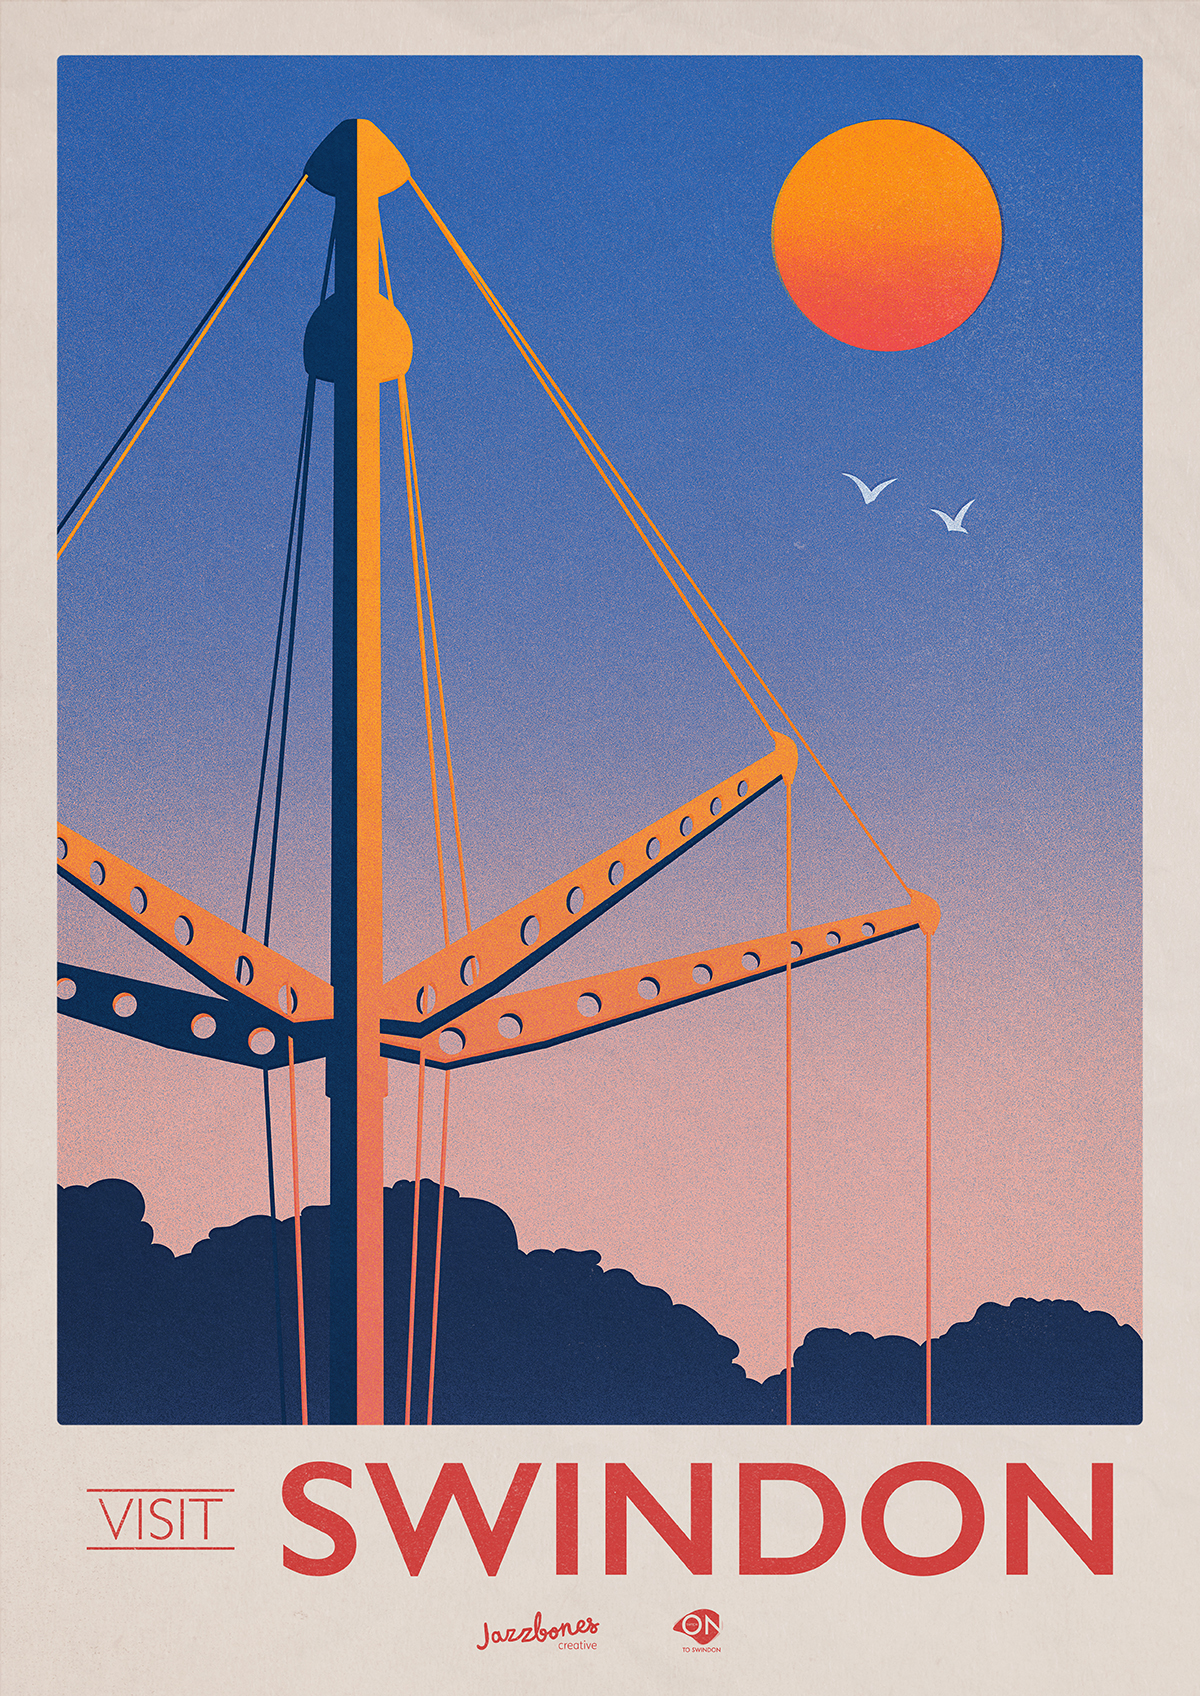 30s poster design - Whimsical Poster Series Uses 1930s Style Design To Change Perceptions Of Swindon